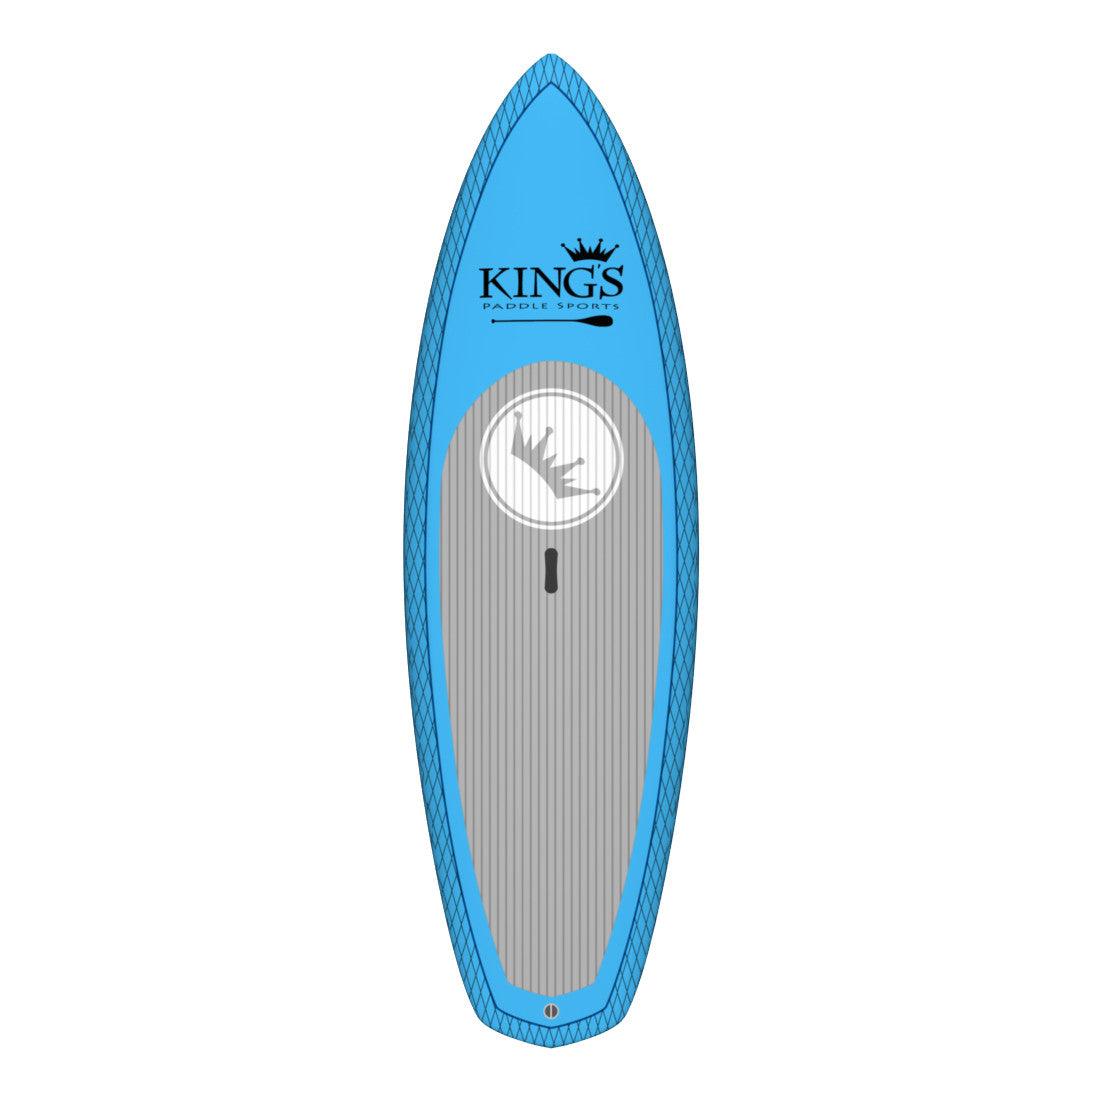 King's Laser Stand Up Paddle Board